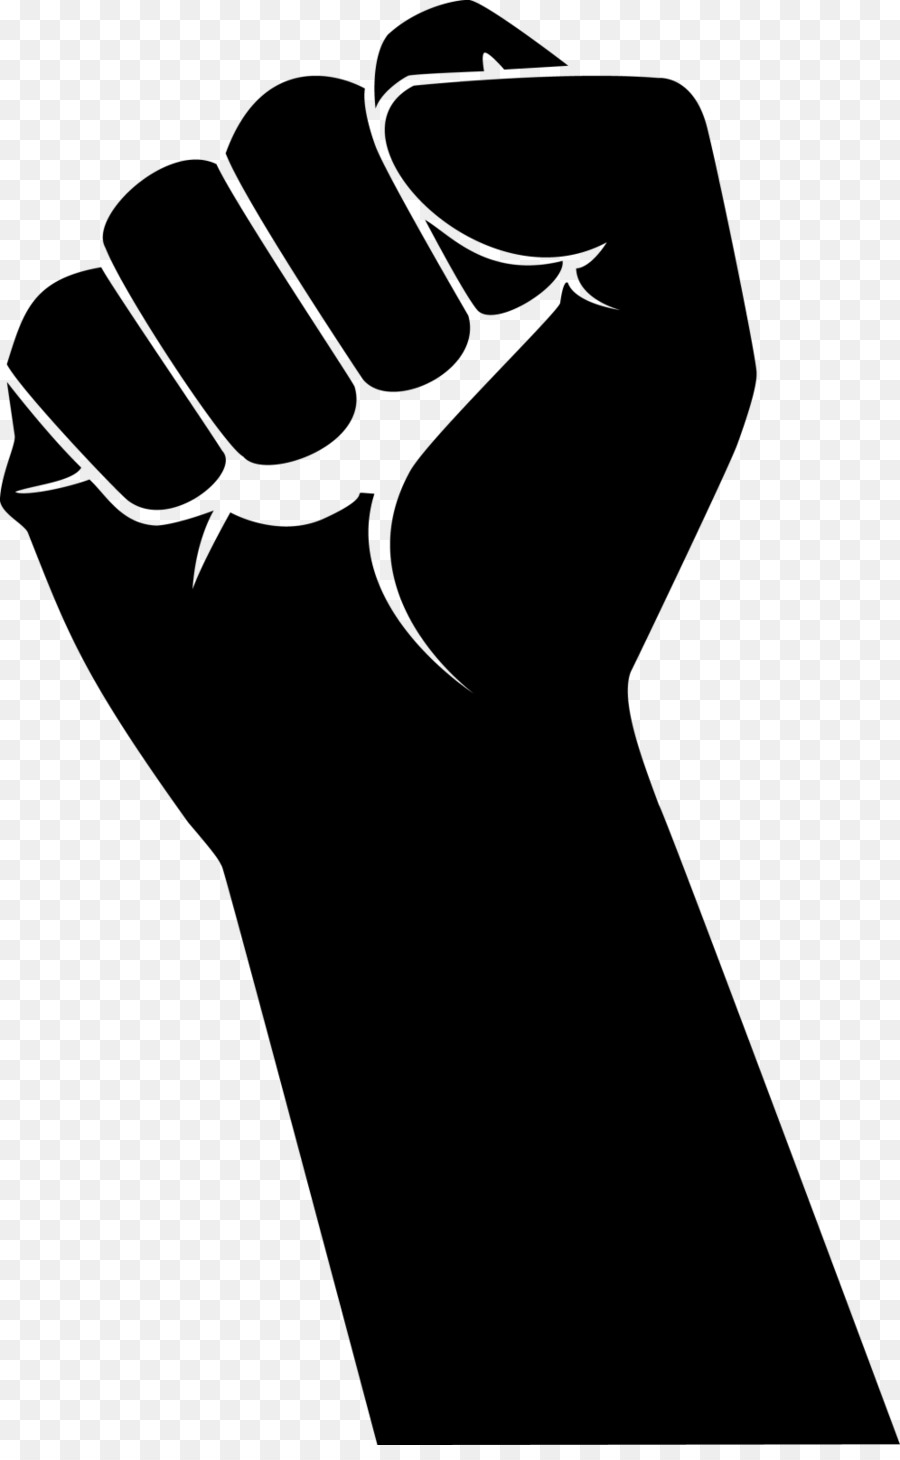 Men's Rights Movement Raised Fist Symbol #256751.